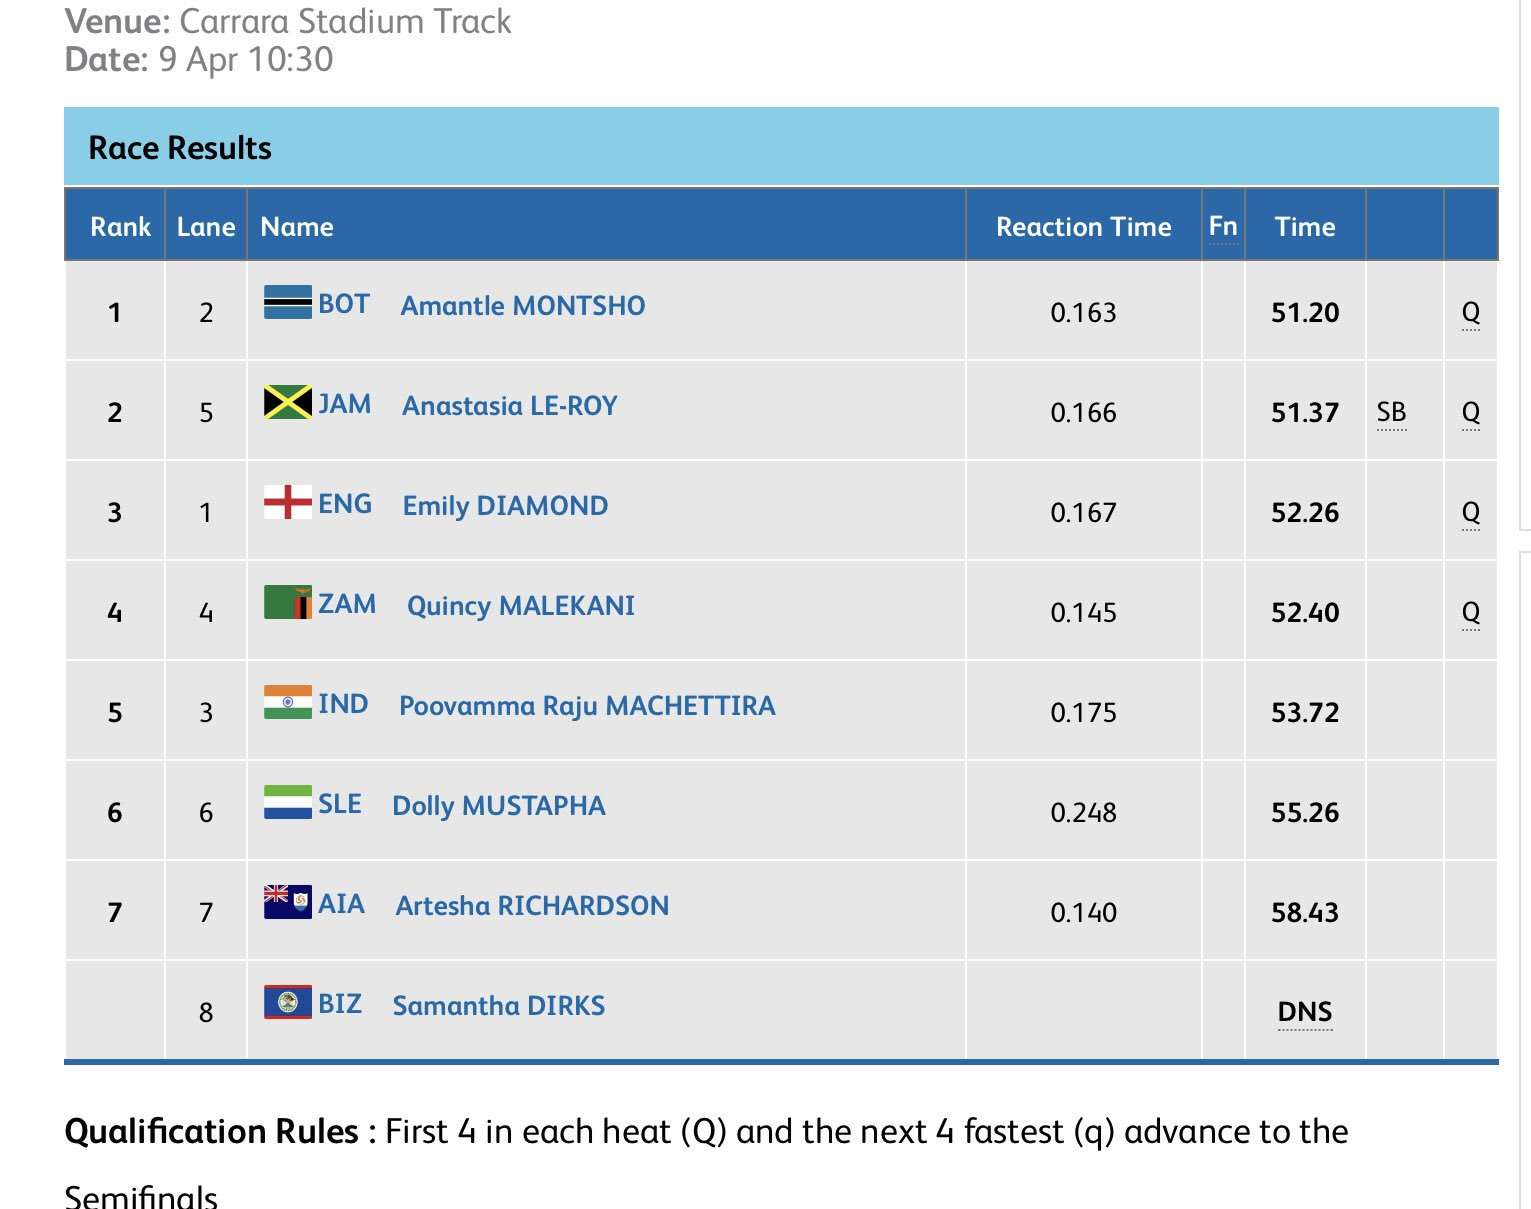 Former World 400m champion @AmantleMon of #Botswana wins the first heat of the women's 400m in 51.20. #Zambia's Quincy Malekani picks the last automatic qualifying spot to the Semifinals in fourth with 52.40 secs.  #GC2018Athletics #GC2018 https://t.co/Yrmpkud8wd